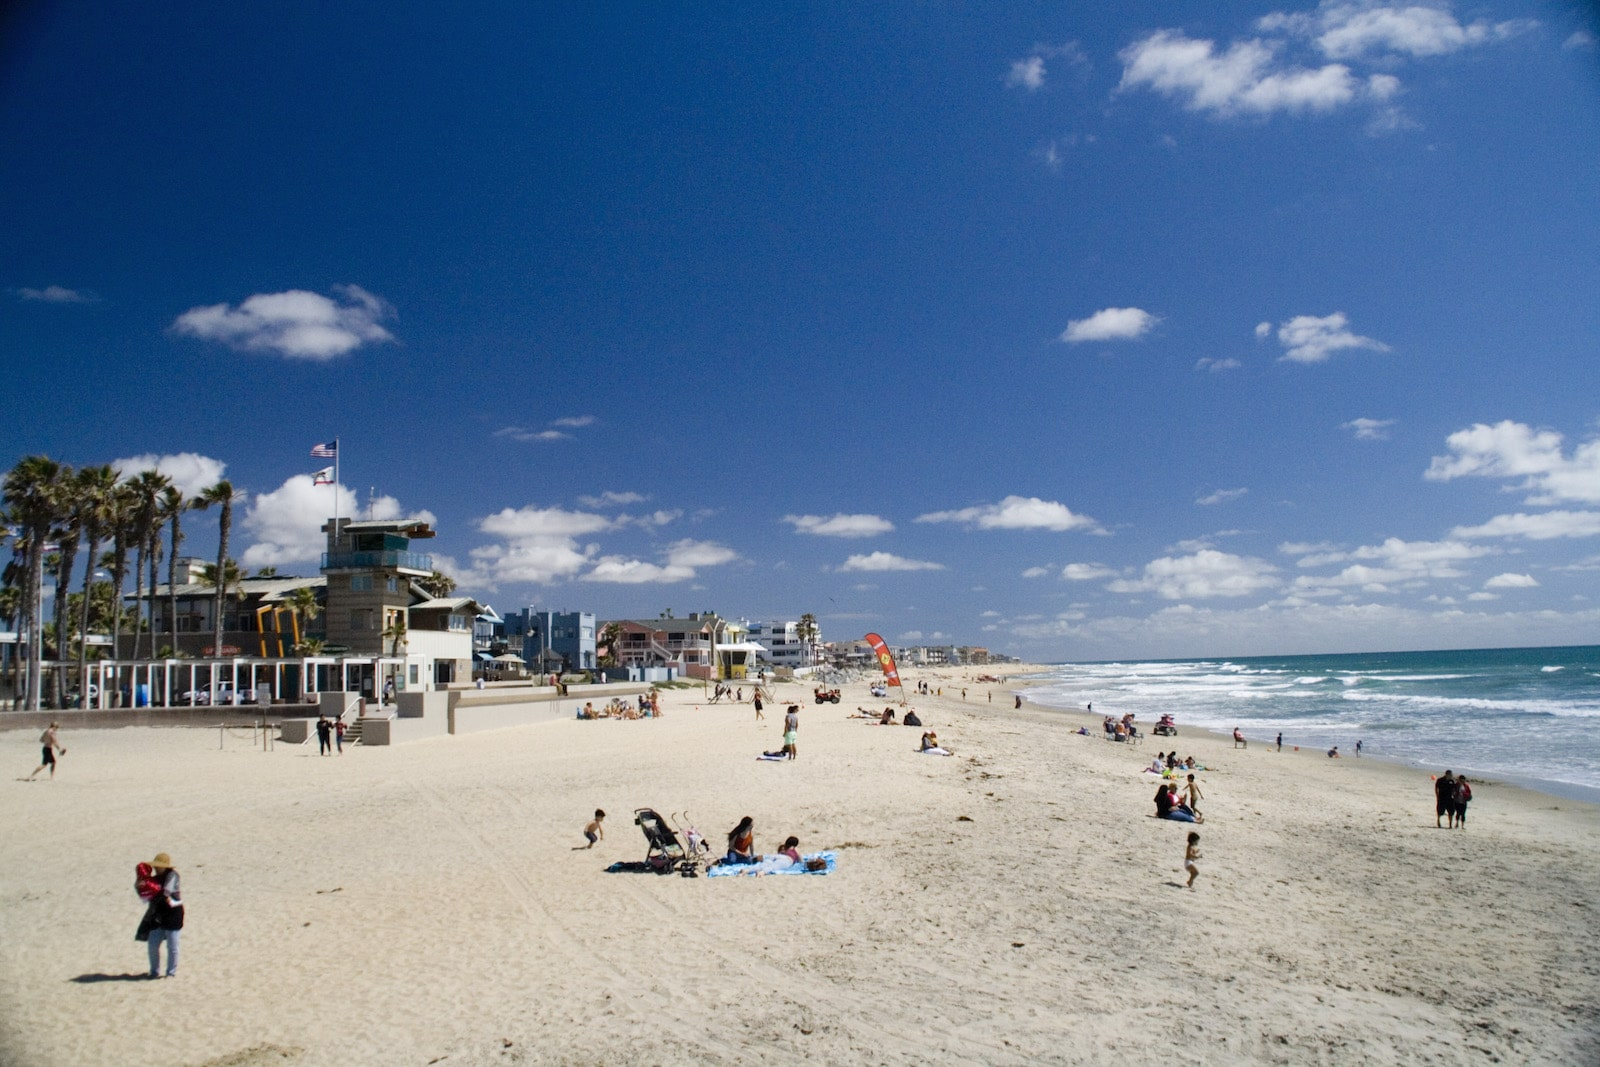 image of beachgoers at Imperial Beach, San Diego